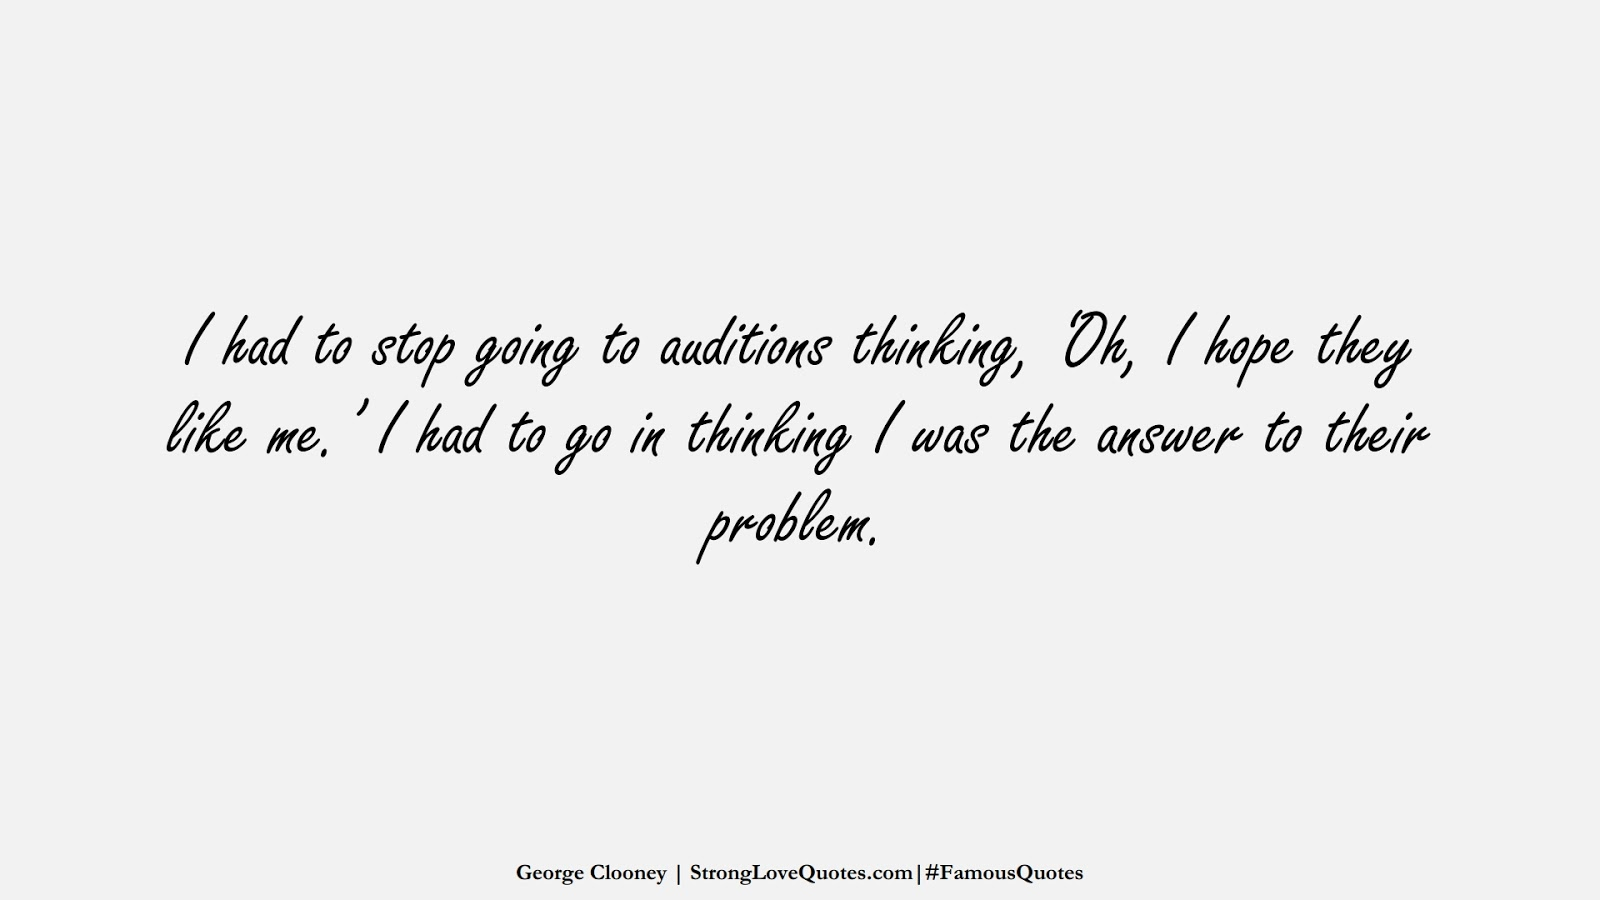 I had to stop going to auditions thinking, 'Oh, I hope they like me.' I had to go in thinking I was the answer to their problem. (George Clooney);  #FamousQuotes